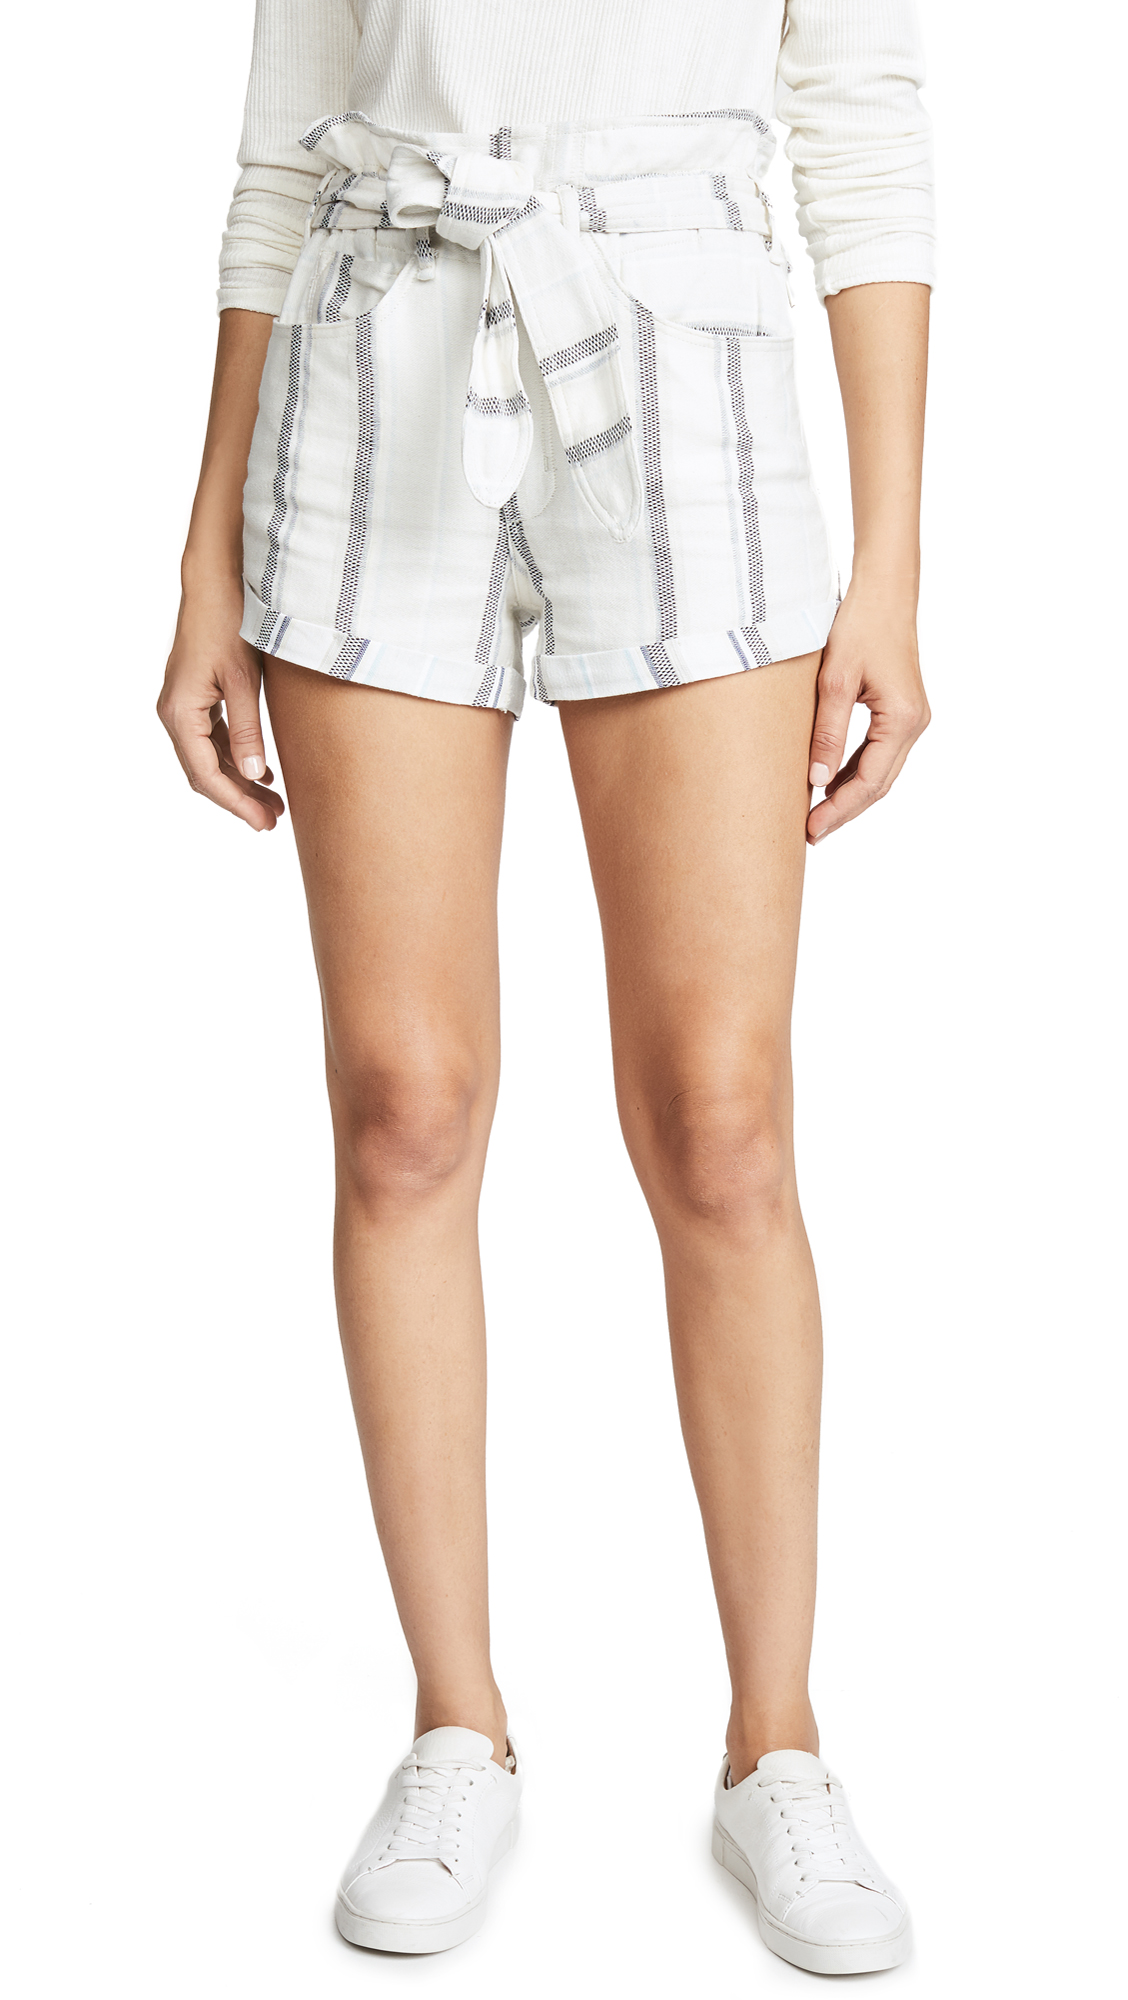 McGuire Denim Helena Shorts In Anywhere